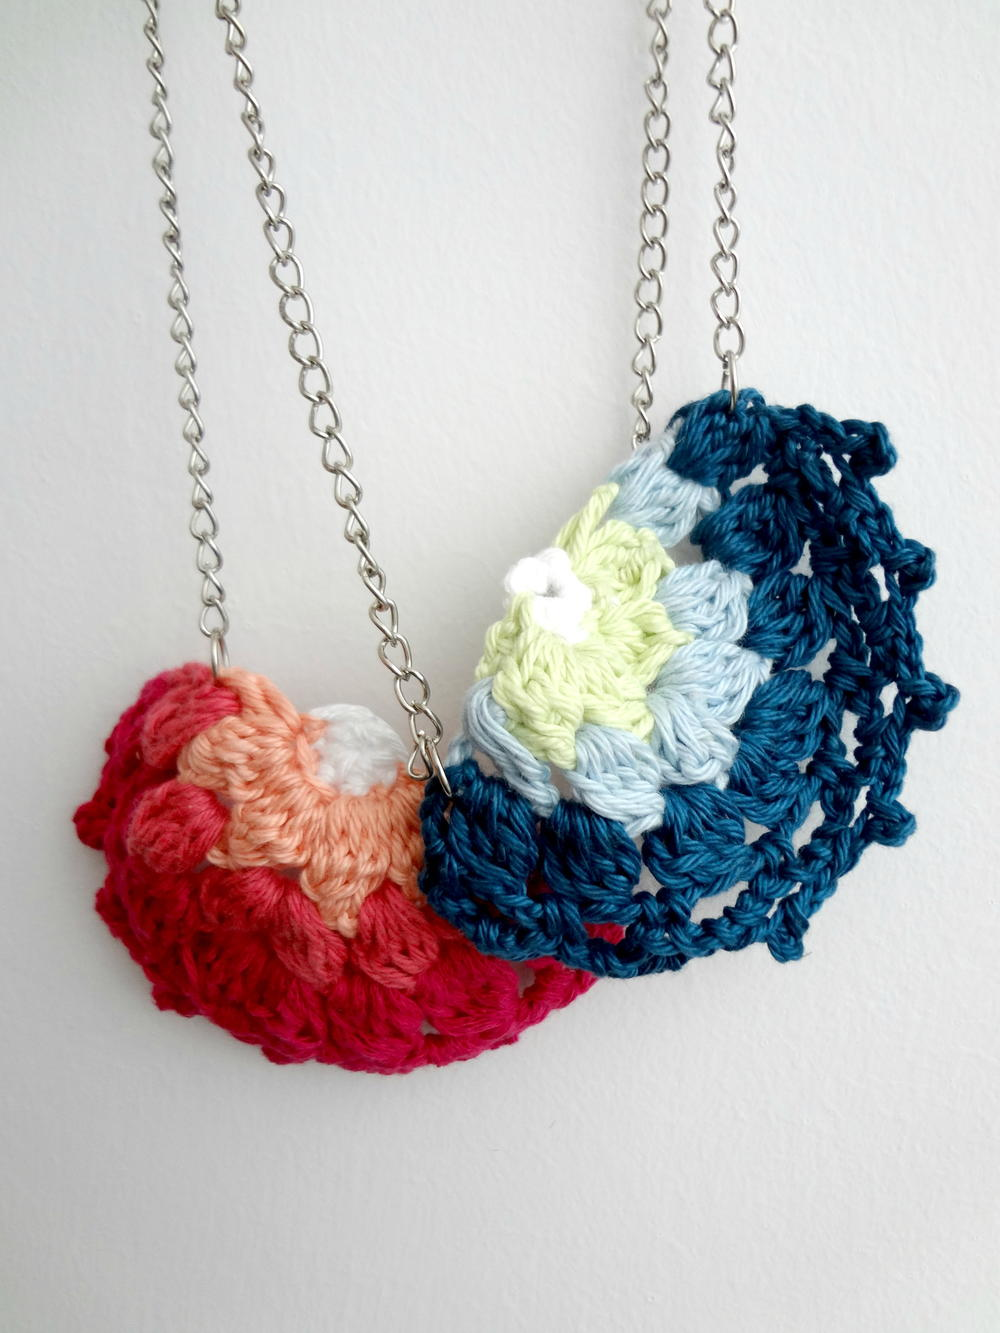 Crocheted Doily Diy Necklace Favecrafts